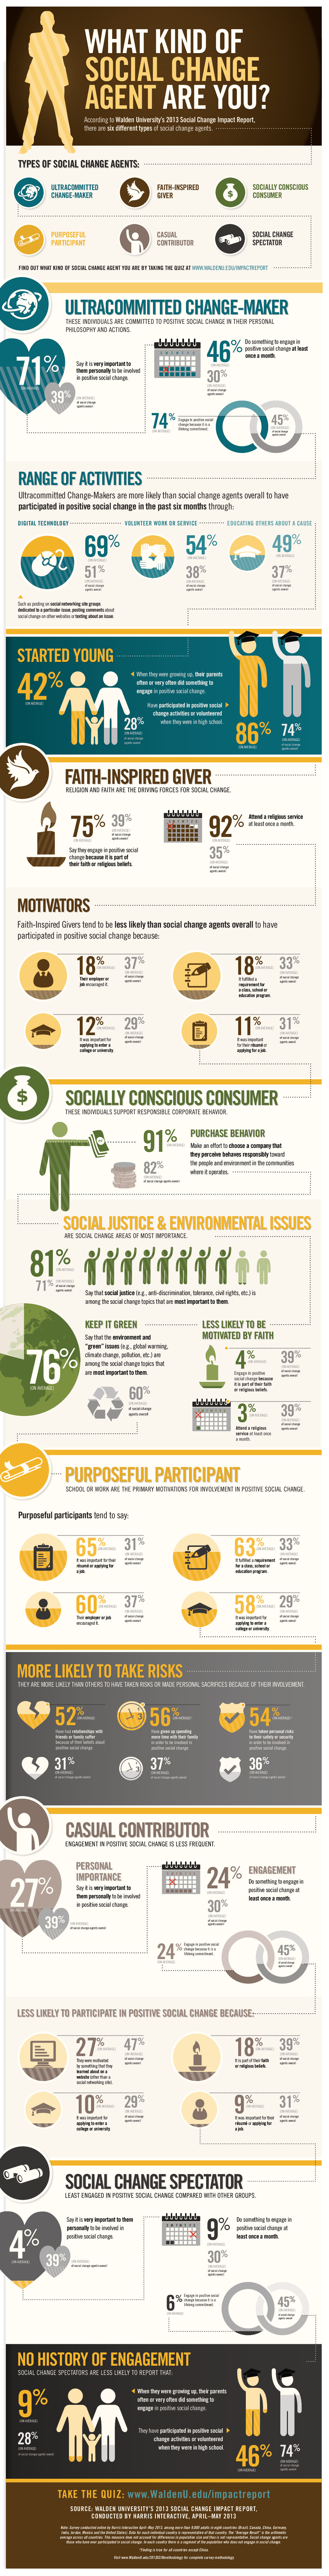 Infographic: What Kind Of Social Change Agent Are You?